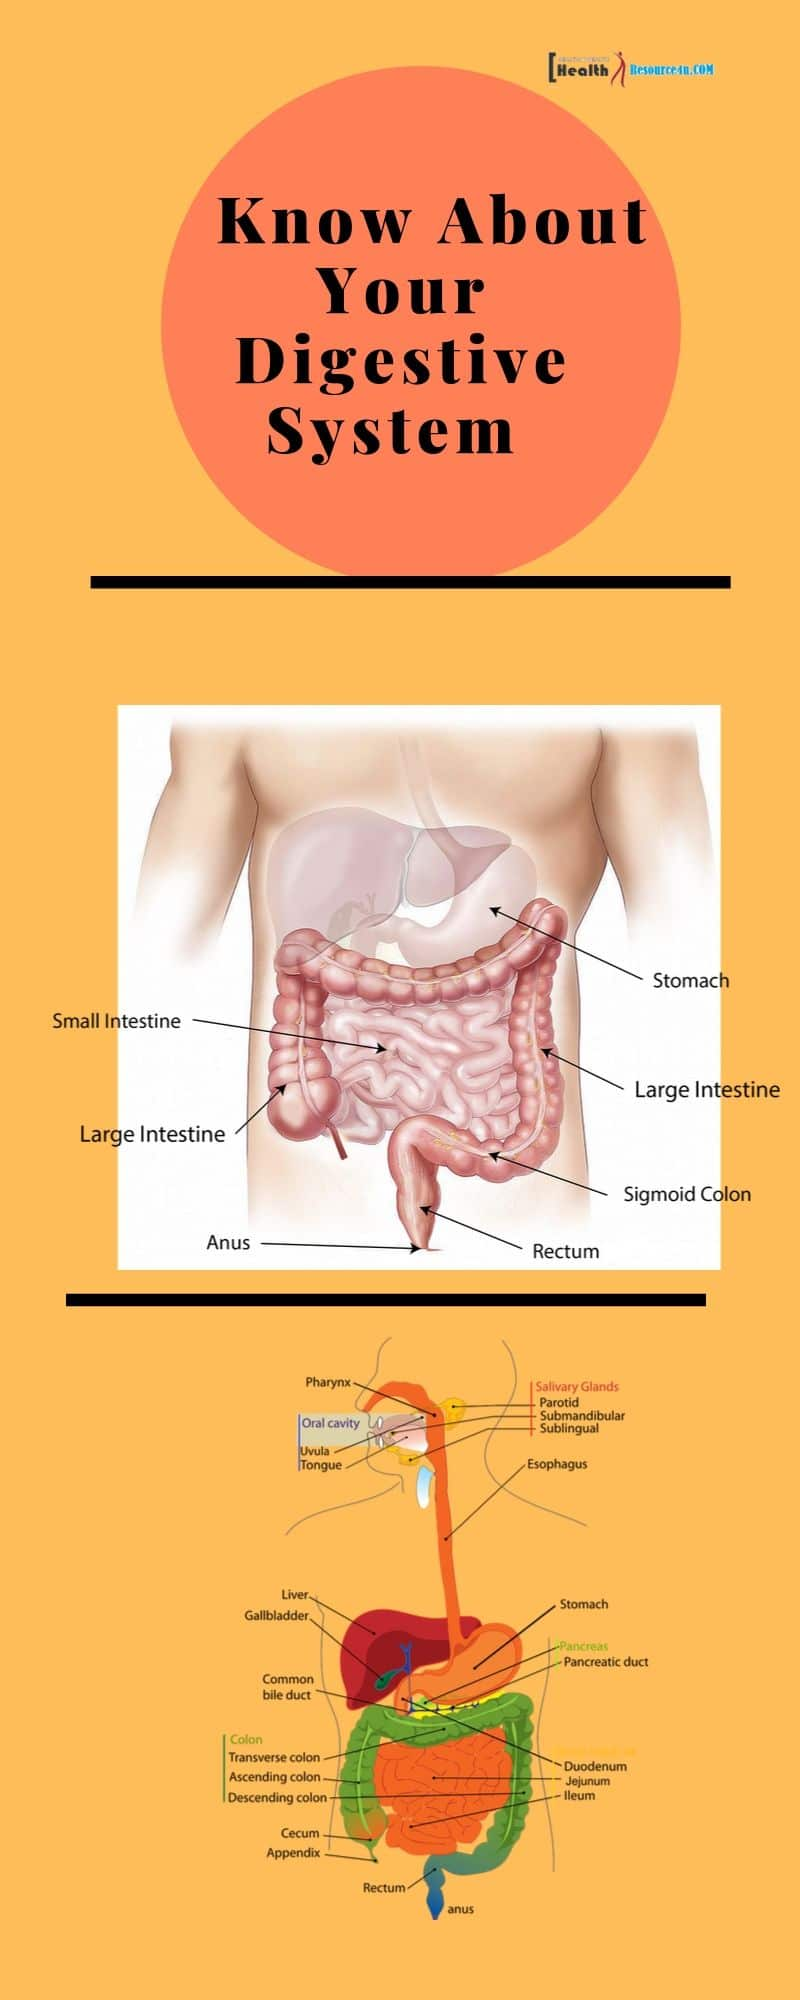 Know About Your Digestive System Infographic